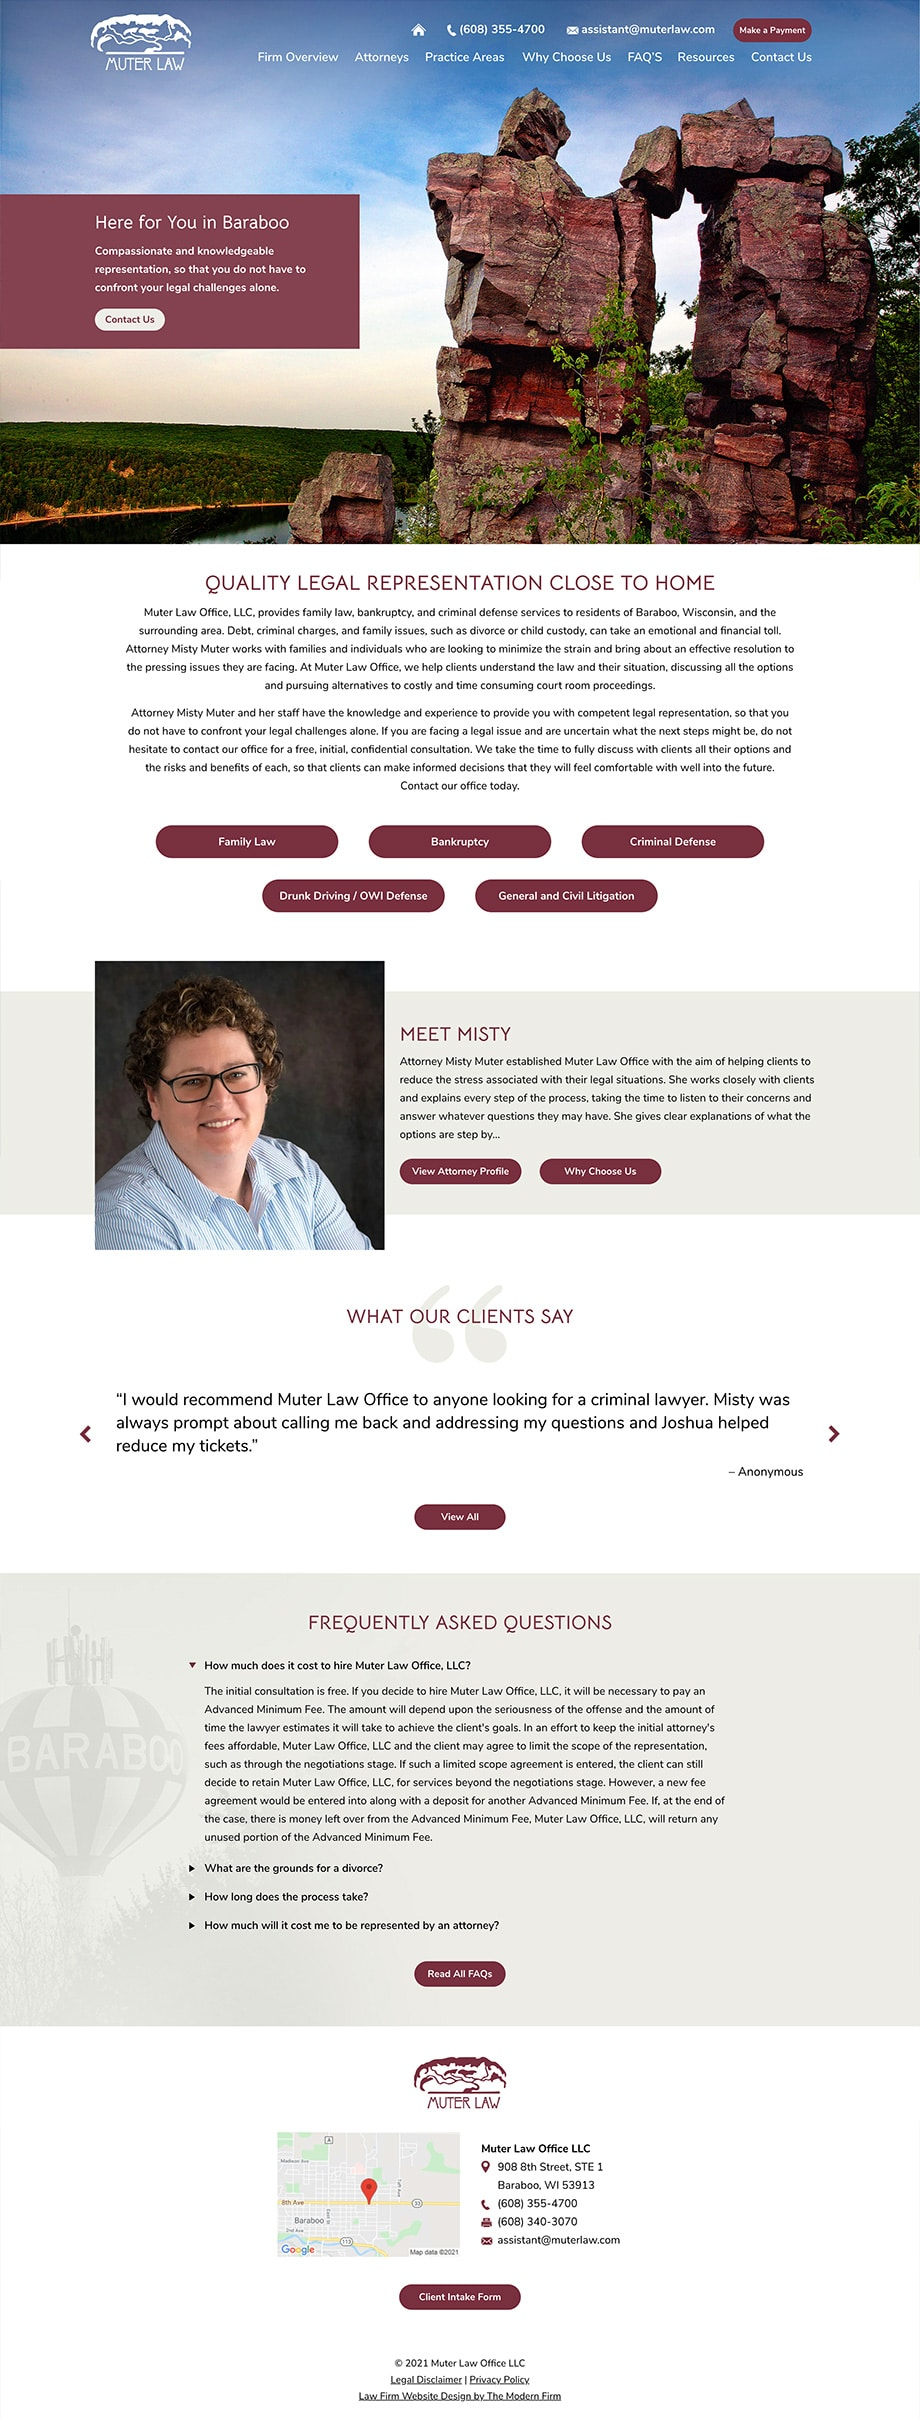 Law Firm Website Design for Muter Law Office LLC